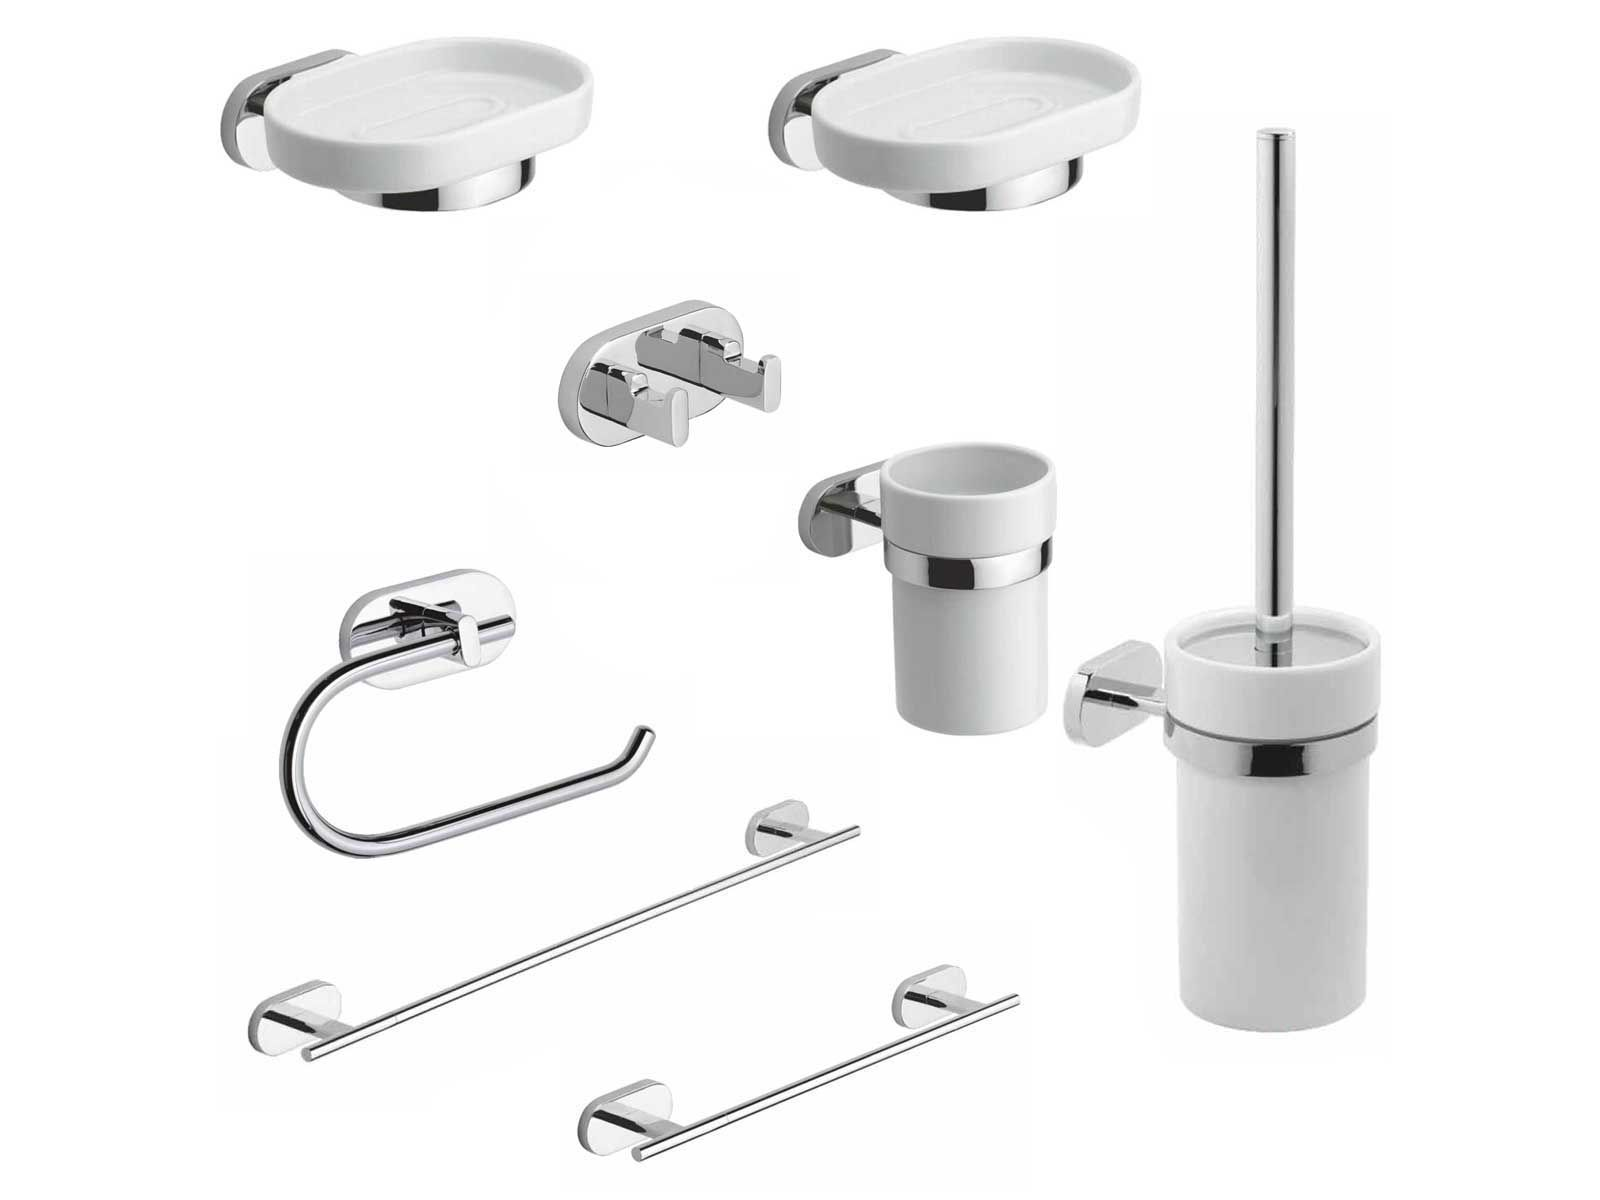 Kit accessori bagno louise 8 pezzi metaform for Accessori lavandino bagno